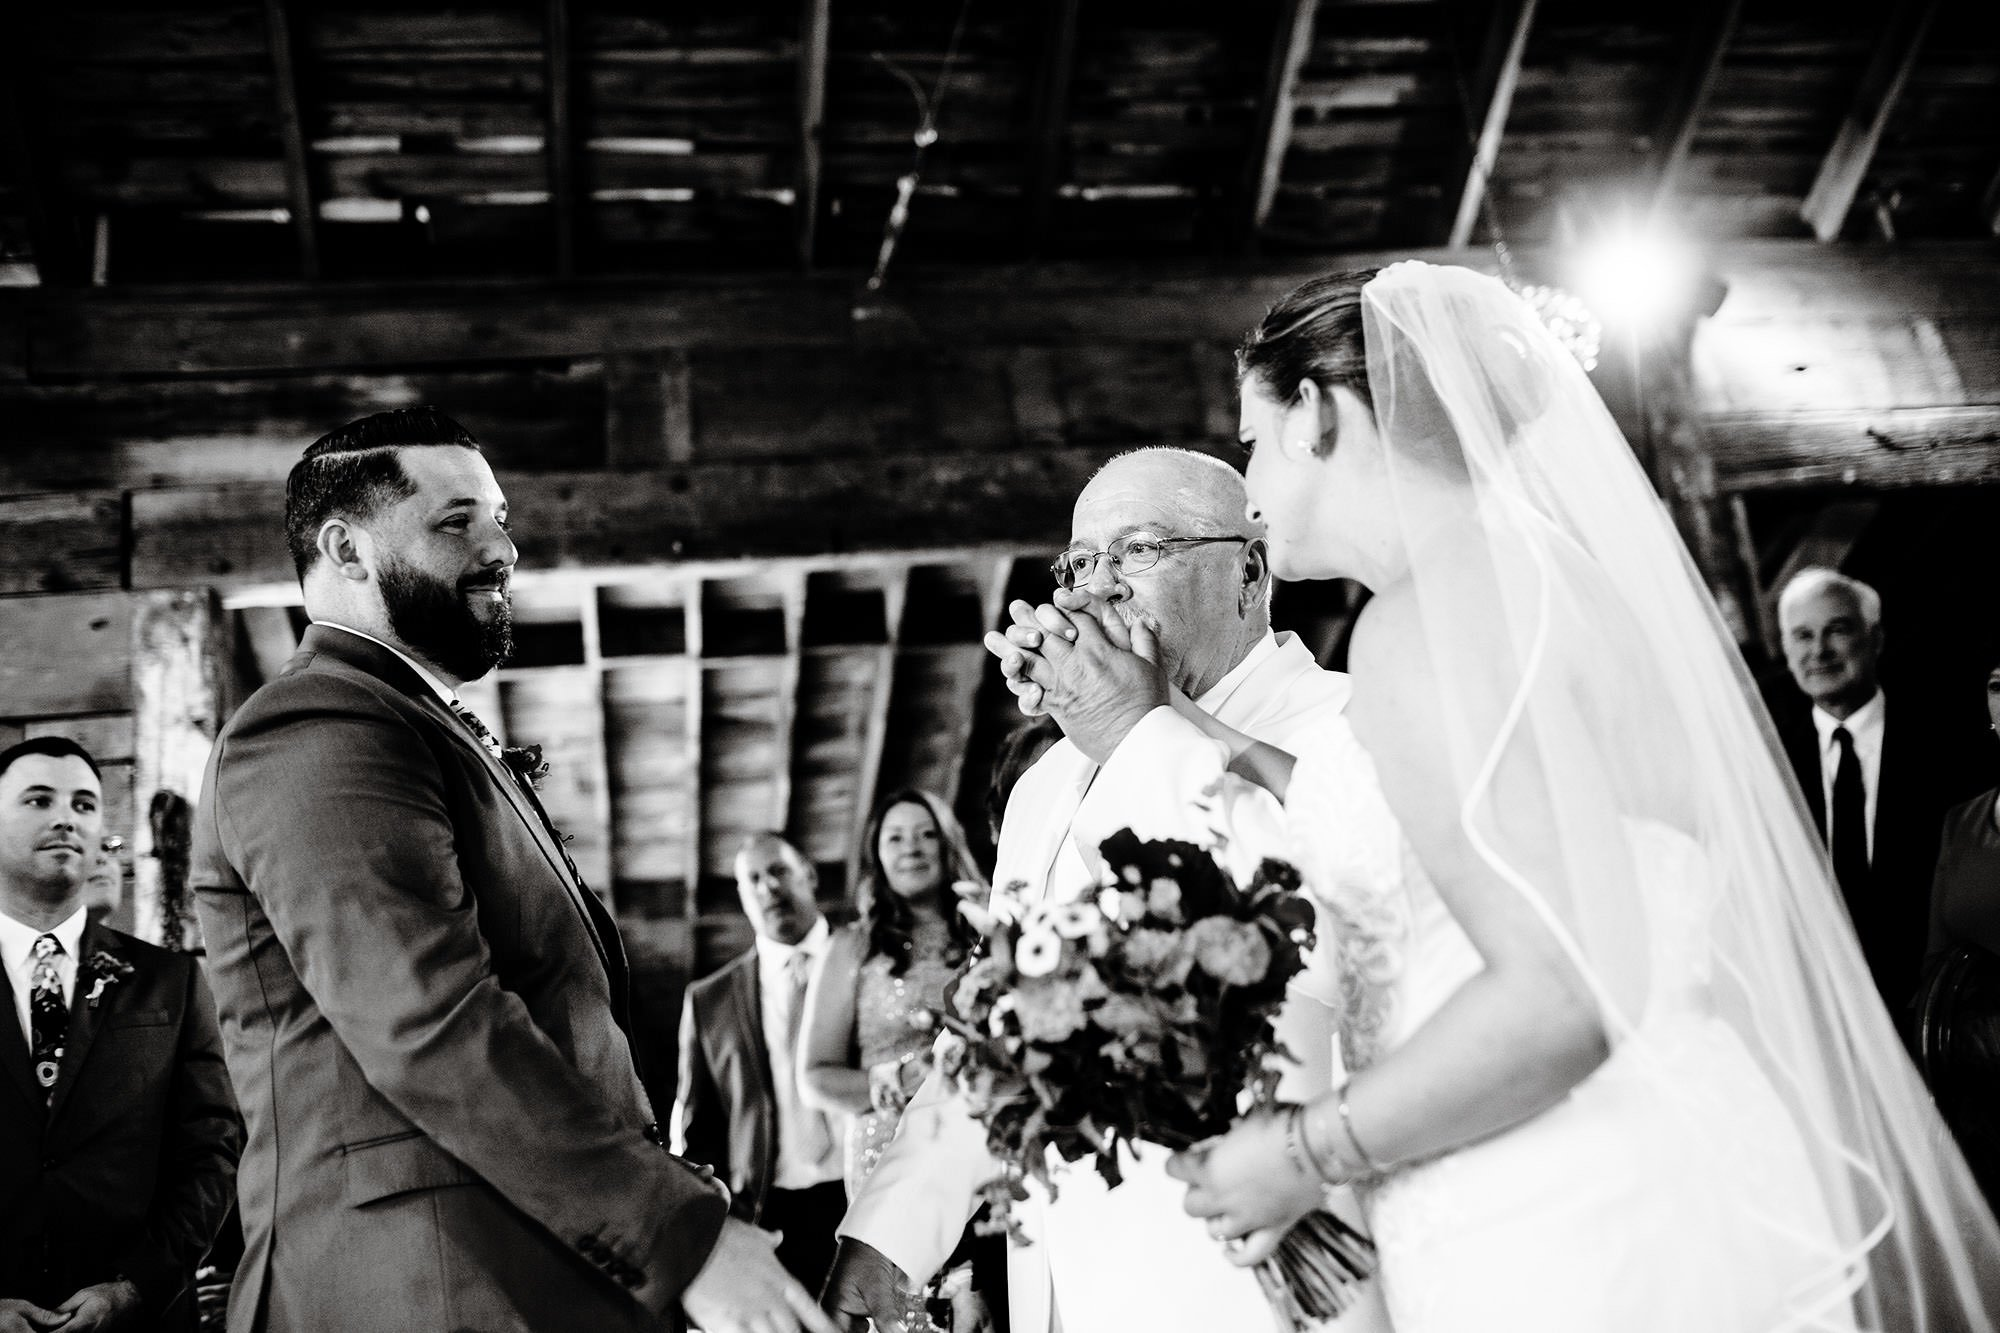 The father of the bride kisses his daughter's hand during the wedding ceremony at Bishop Farm.